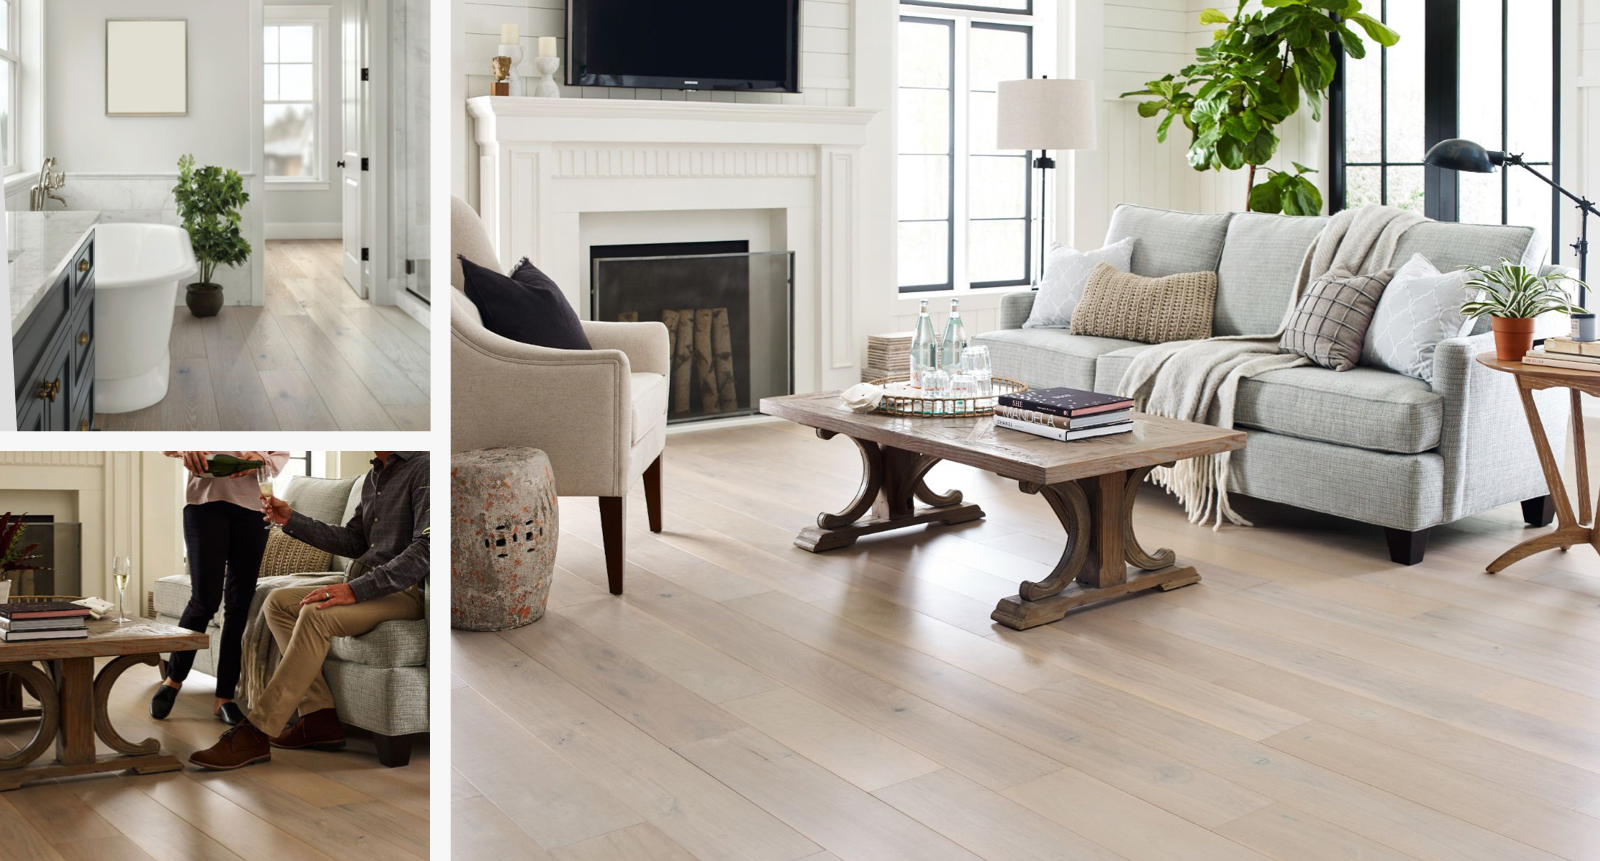 Floorte waterproof hardwood flooring for your home | Gillenwater Flooring